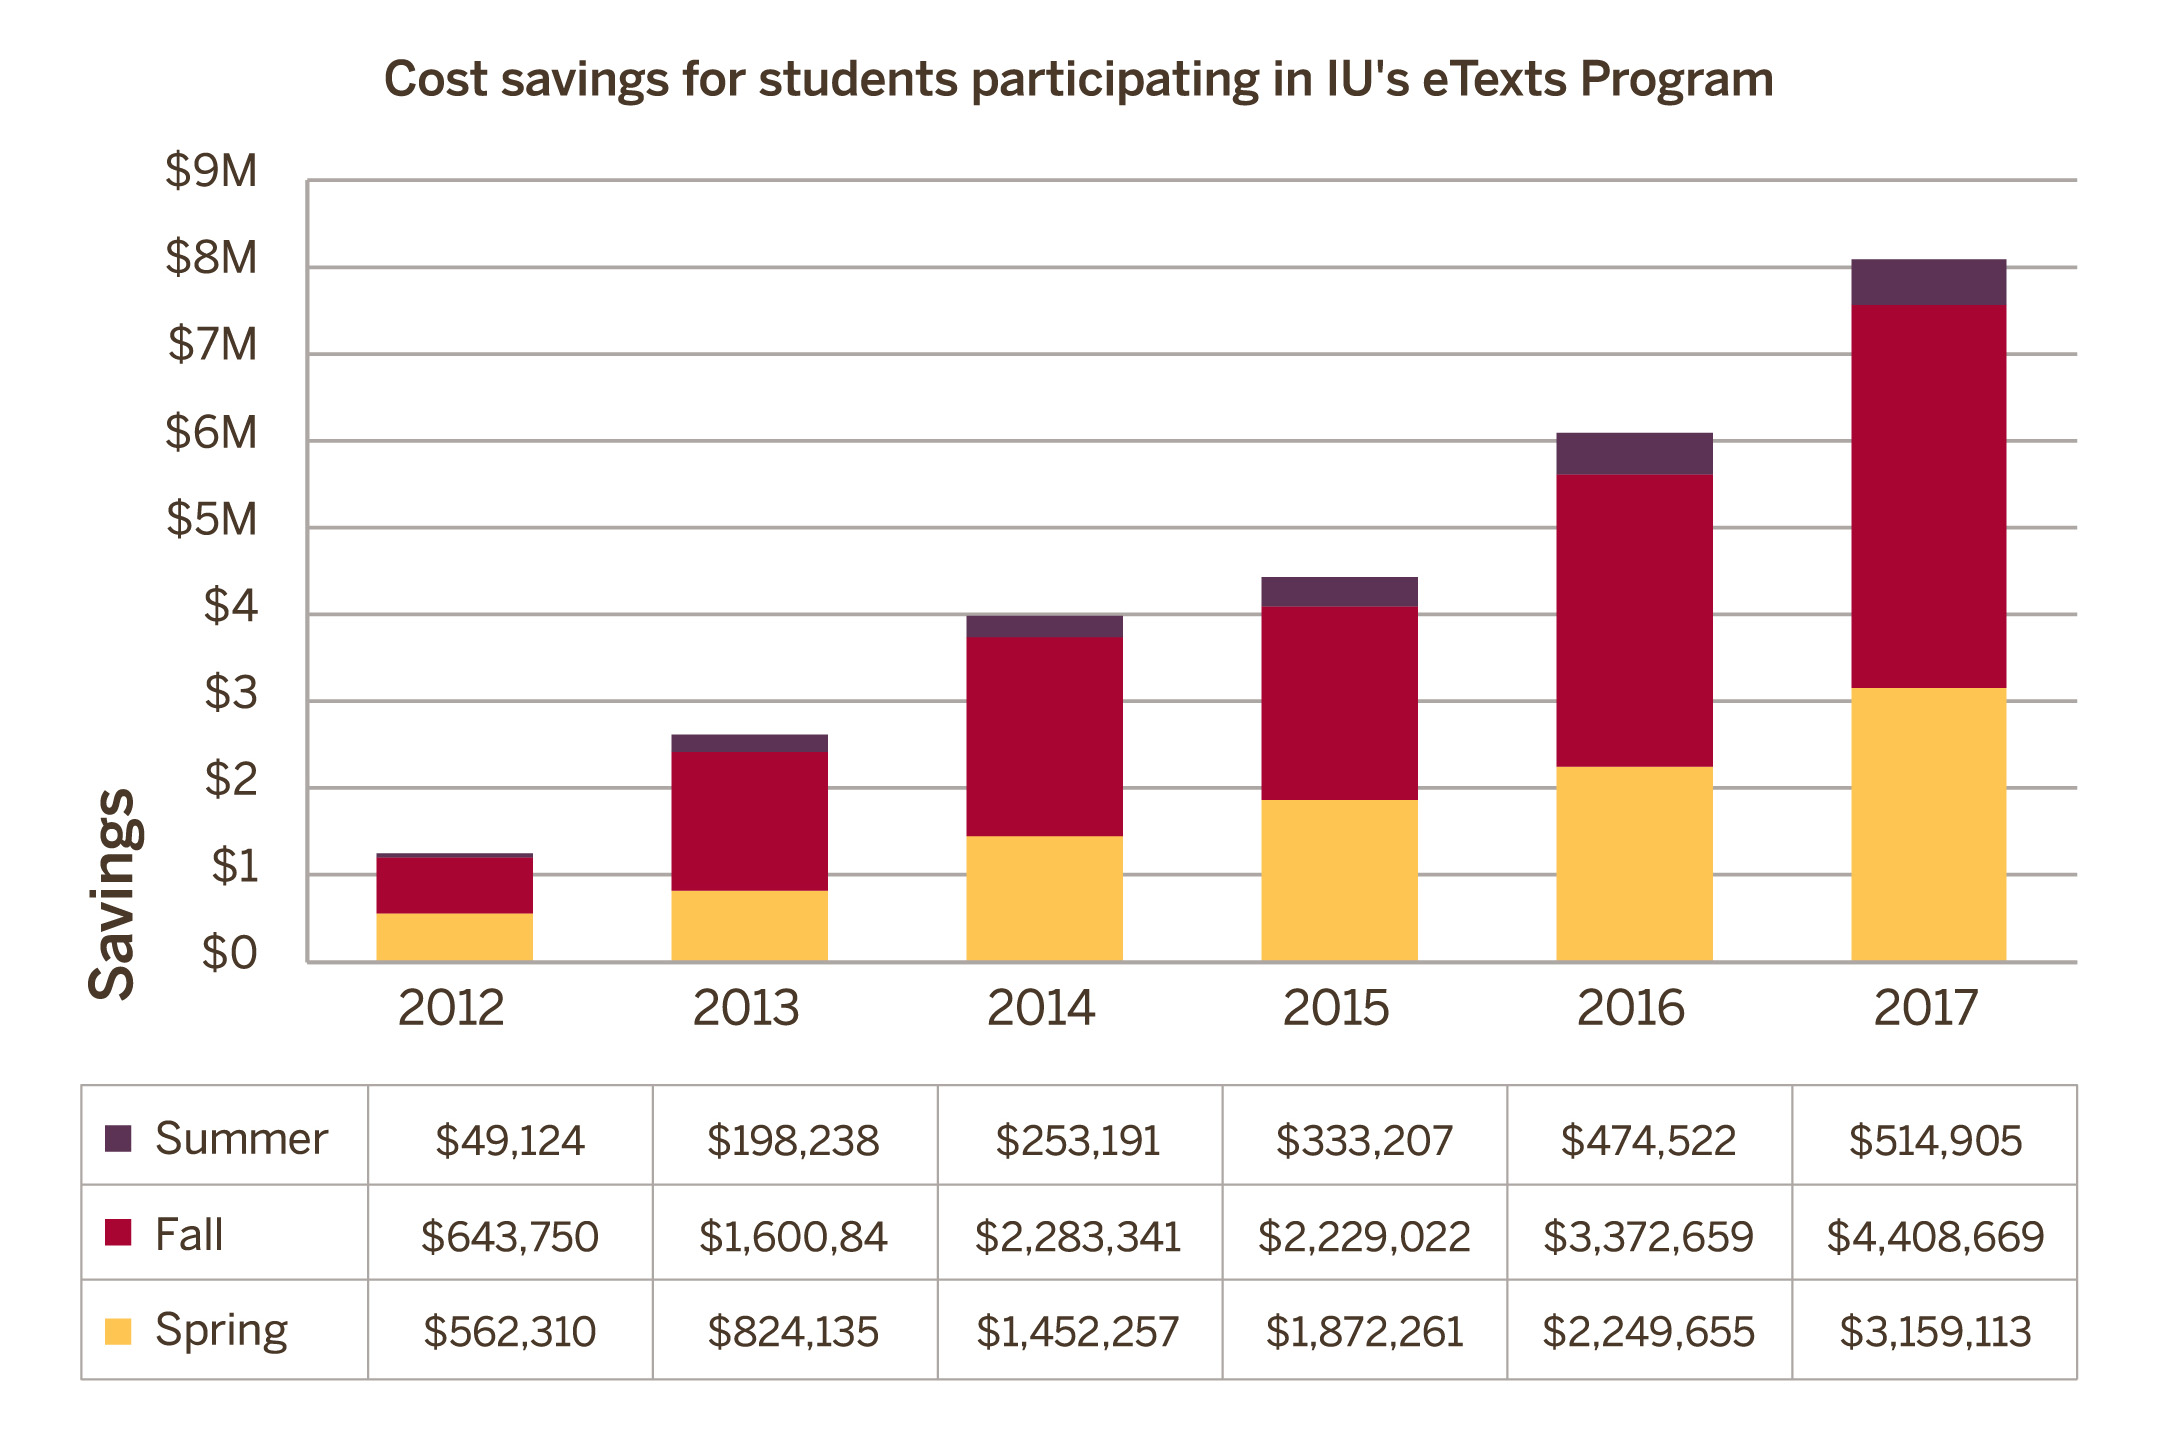 Real cost savings for students participating in IU's eTexts Program